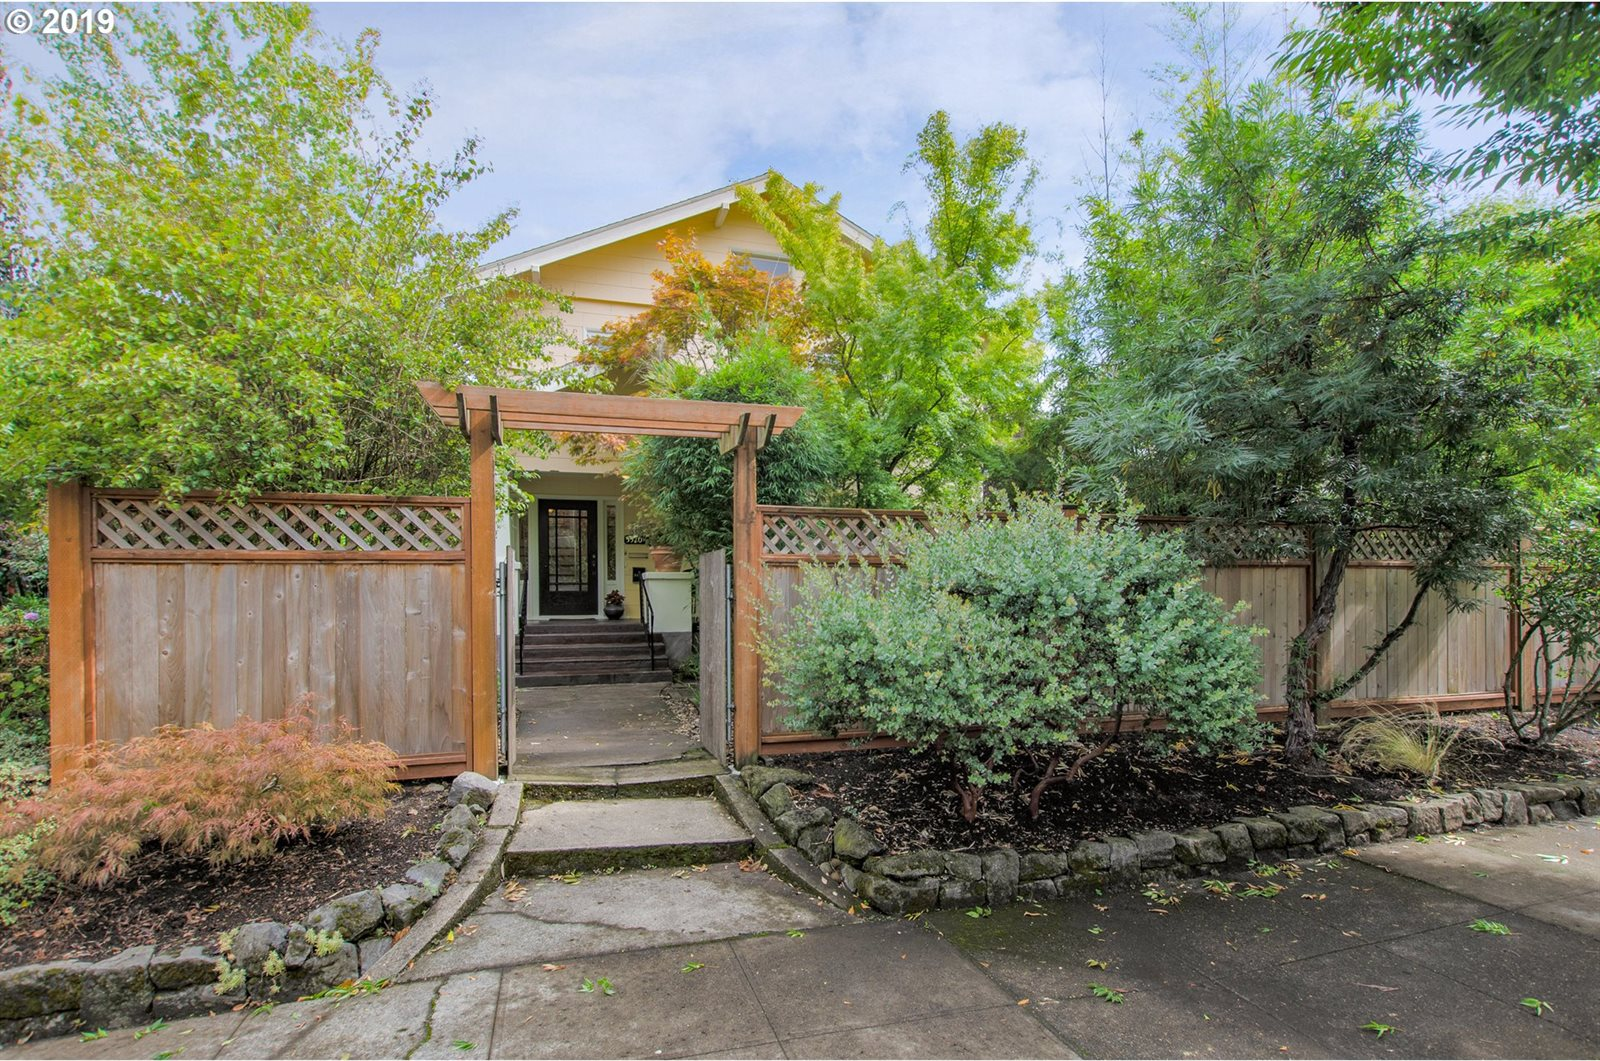 5522/5524 North Moore Ave, Portland, OR 97217